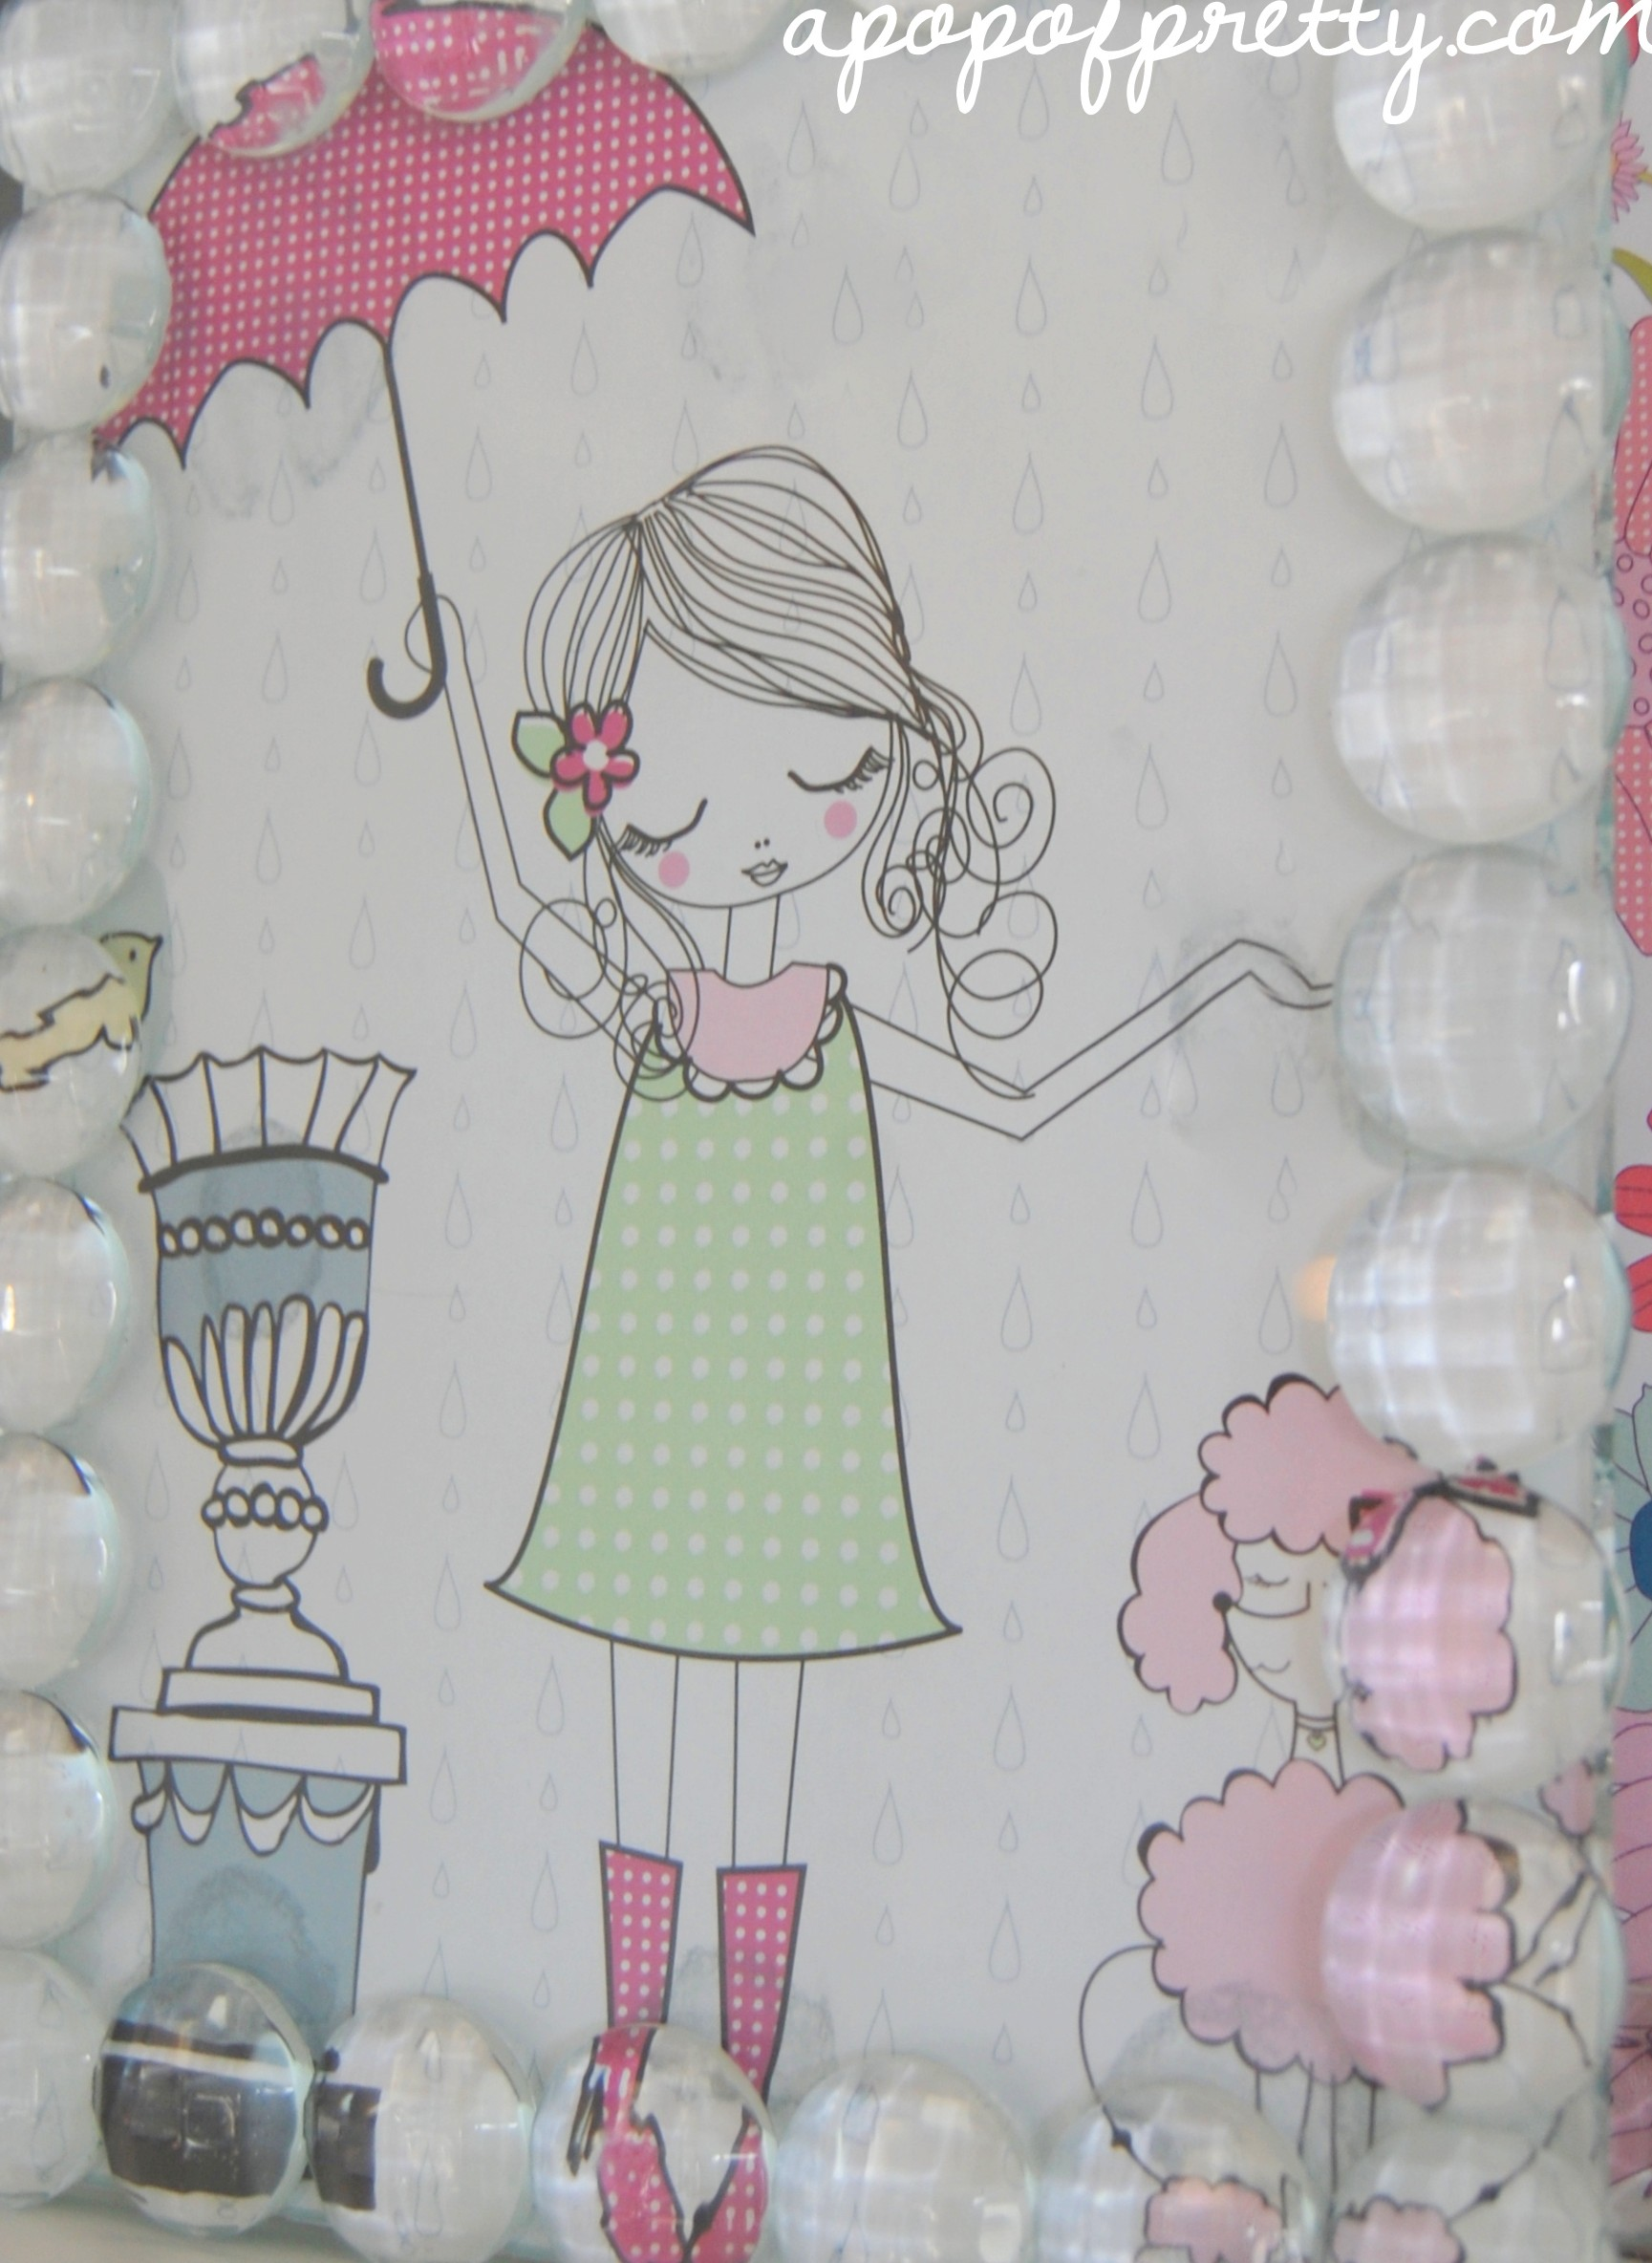 How to decorate seasonally: Use framed scrapbook paper!